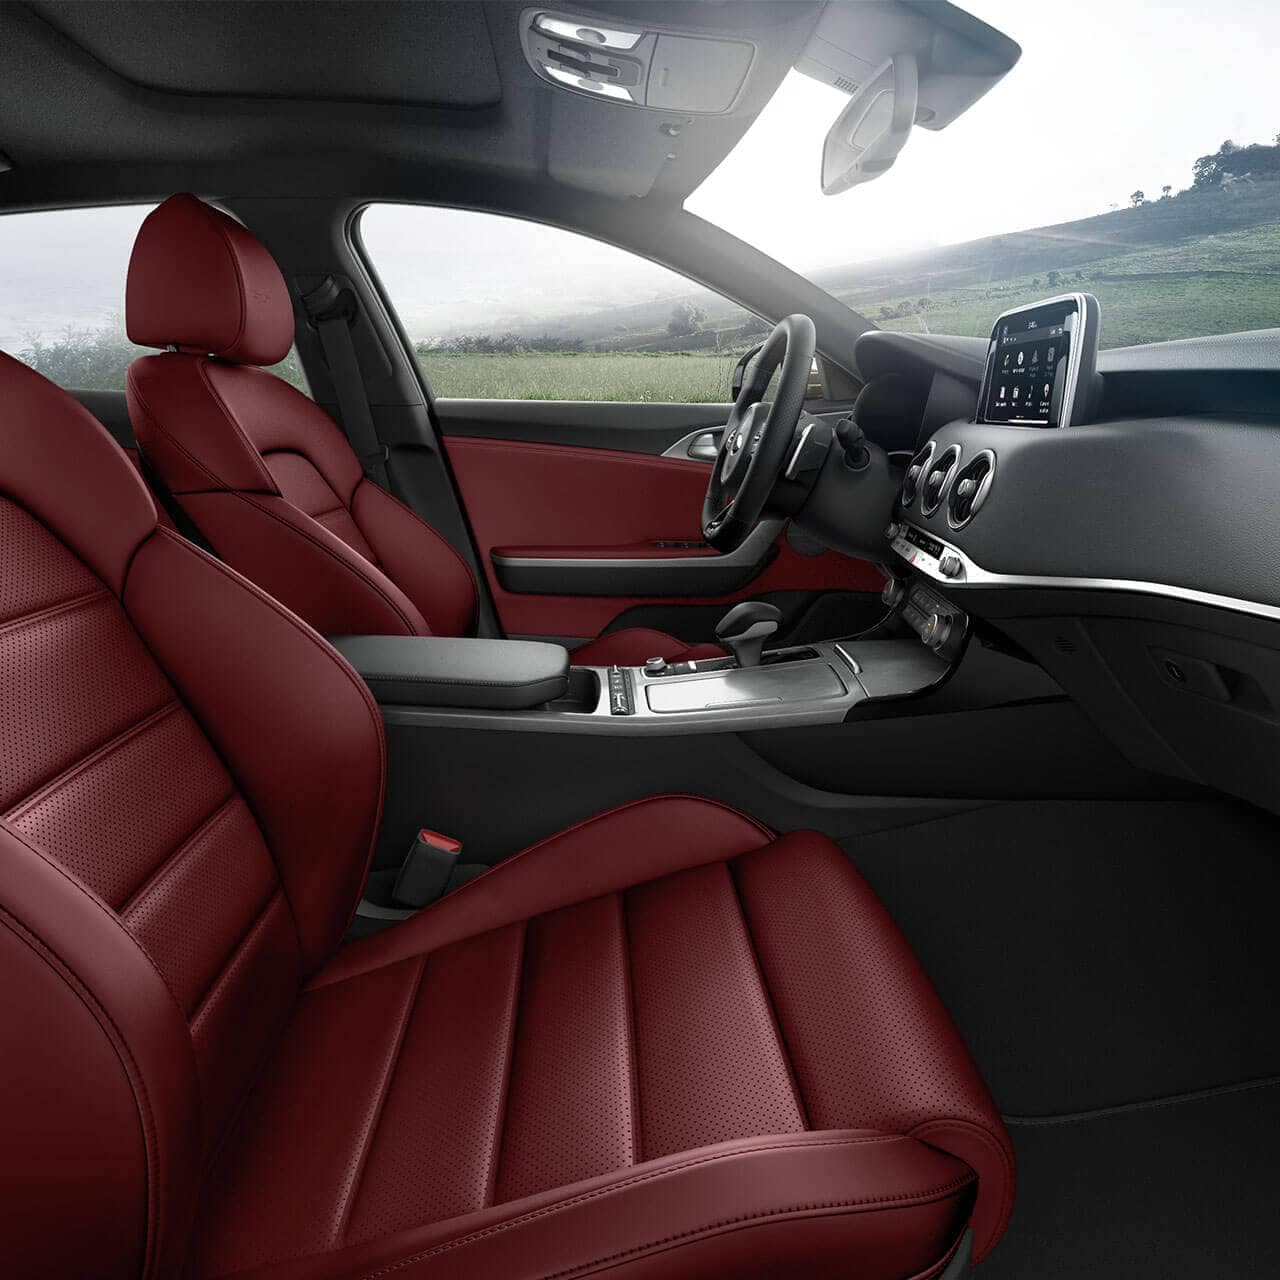 interior cabin of 2018 Kia Stinger with red leather seats